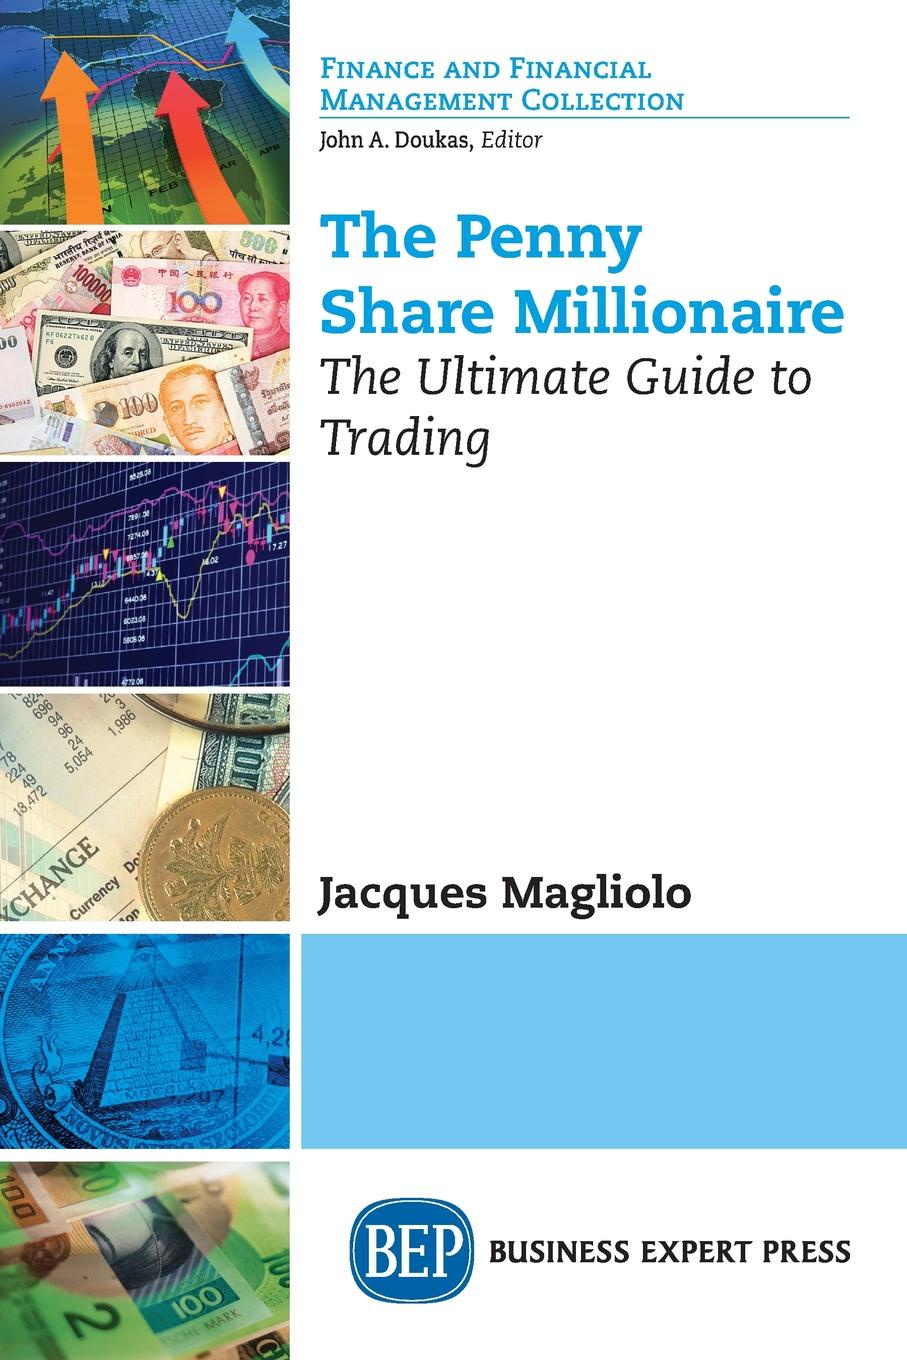 The Penny Share Millionaire. The Ultimate Guide to Trading So, you're interested in becoming penny share millionaireР?...